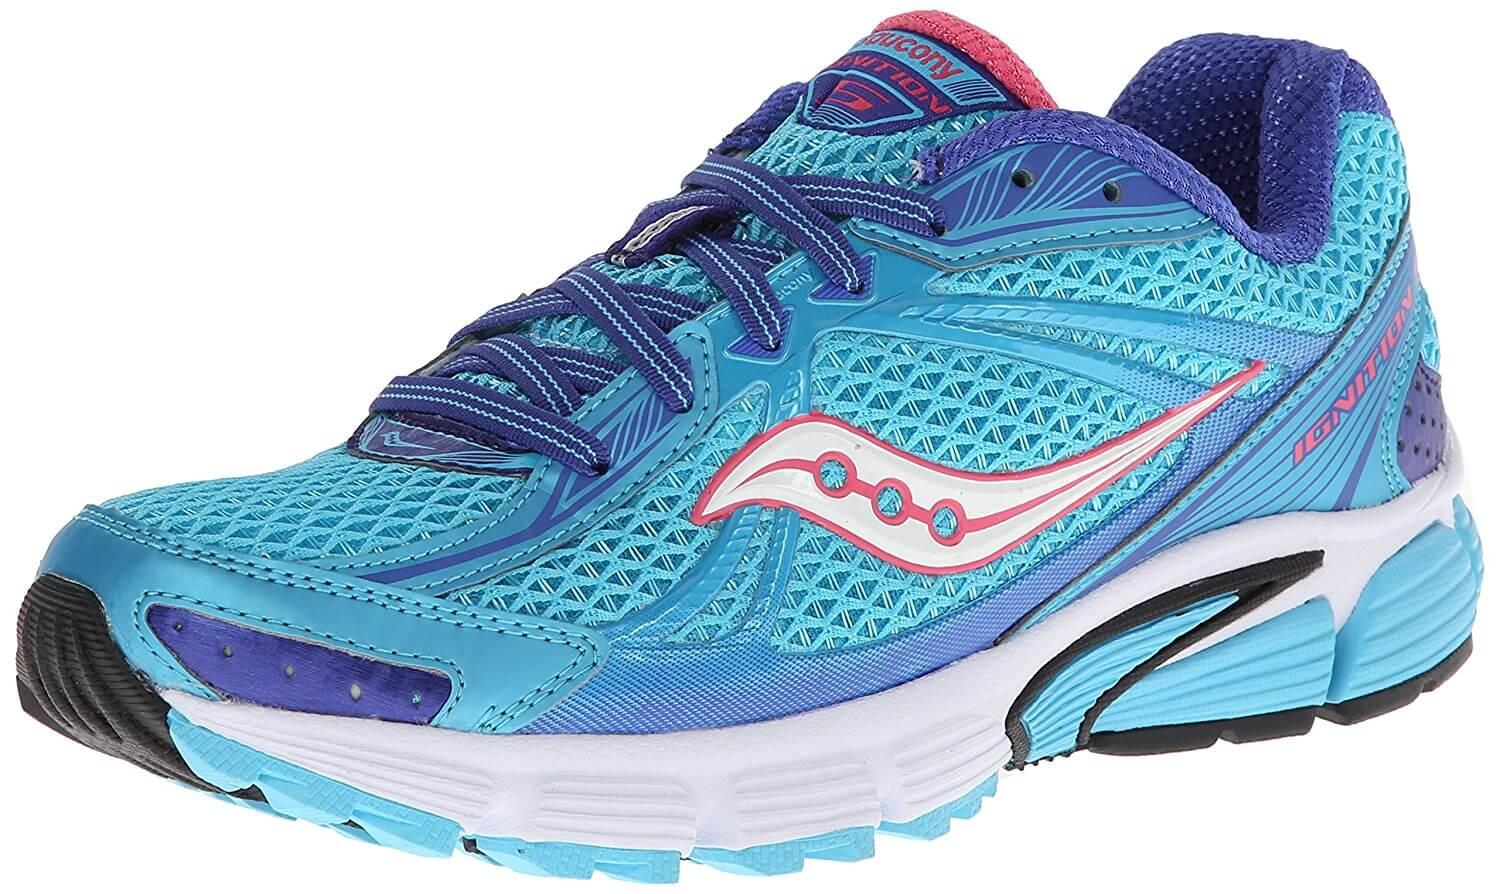 Saucony Ignition 5 is a highly cushioned shoe